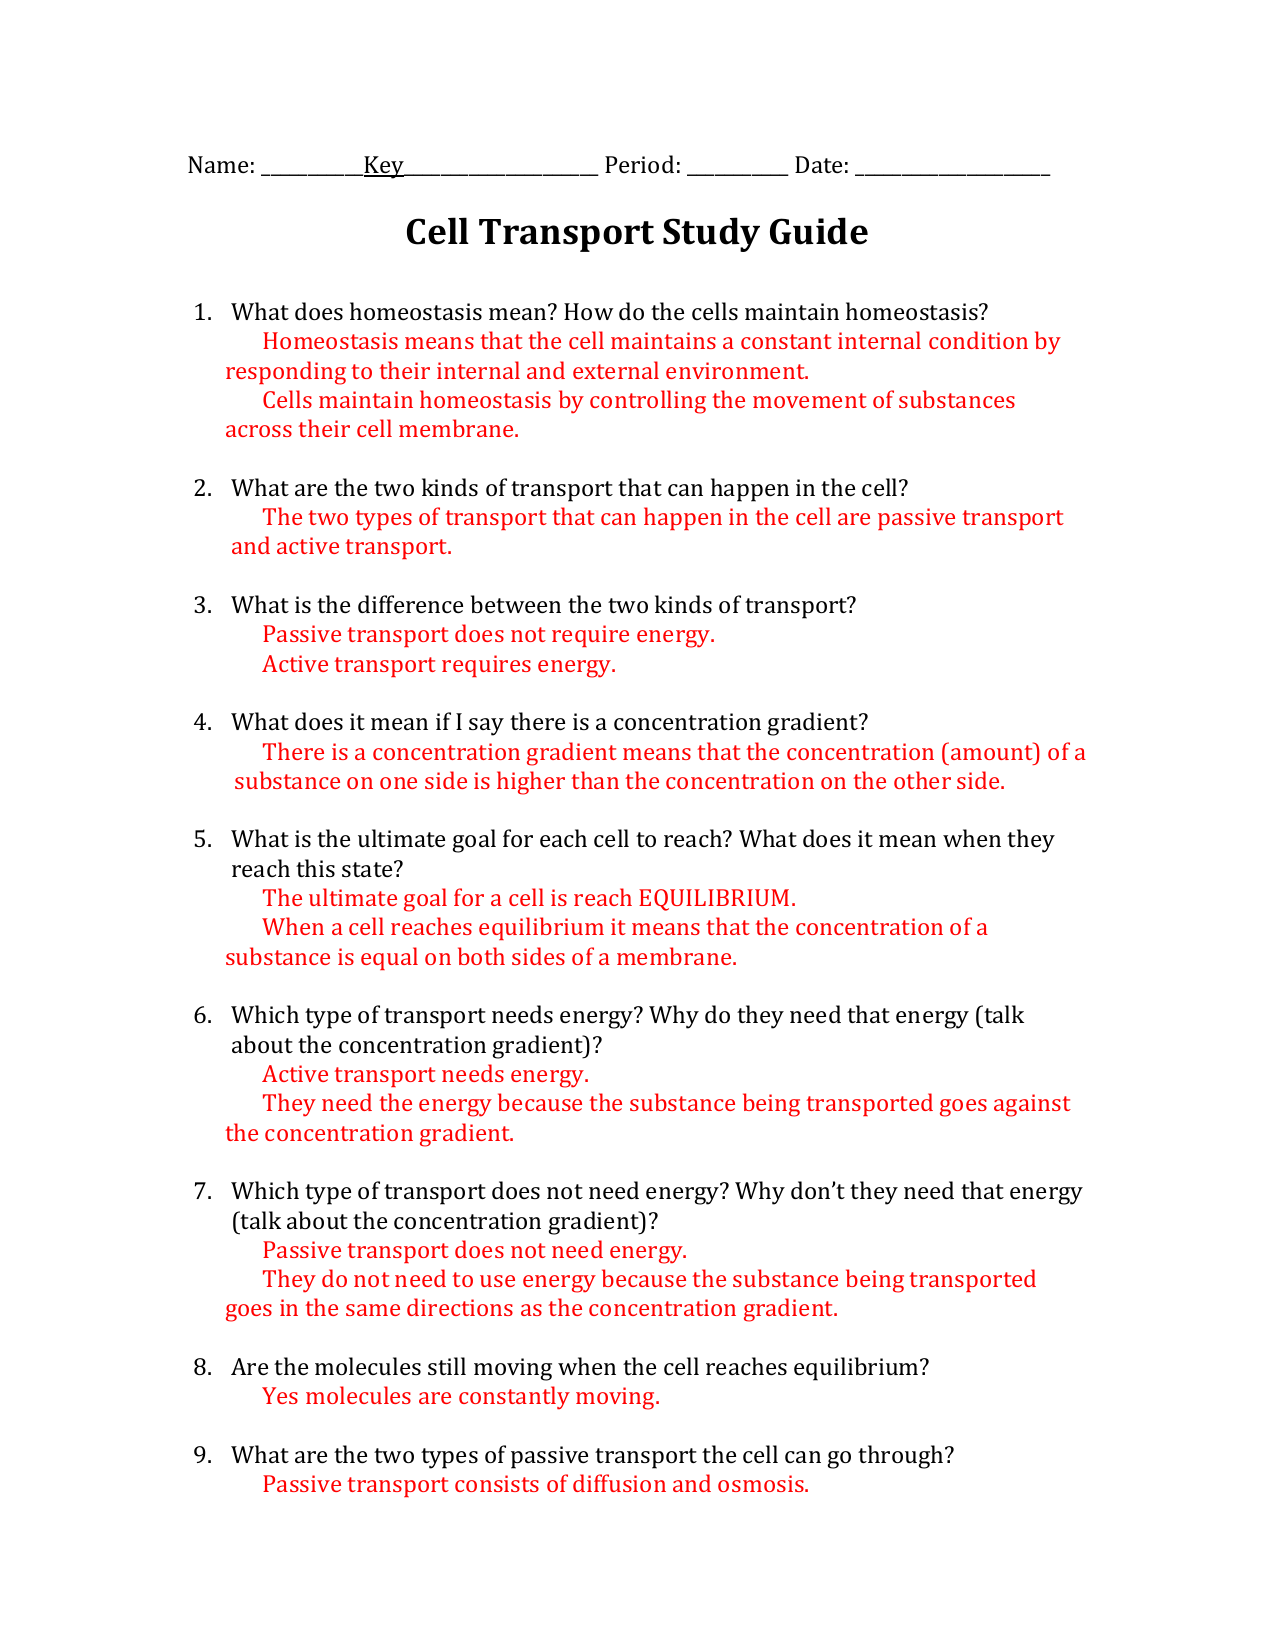 Cell Transport Study Guide Answers